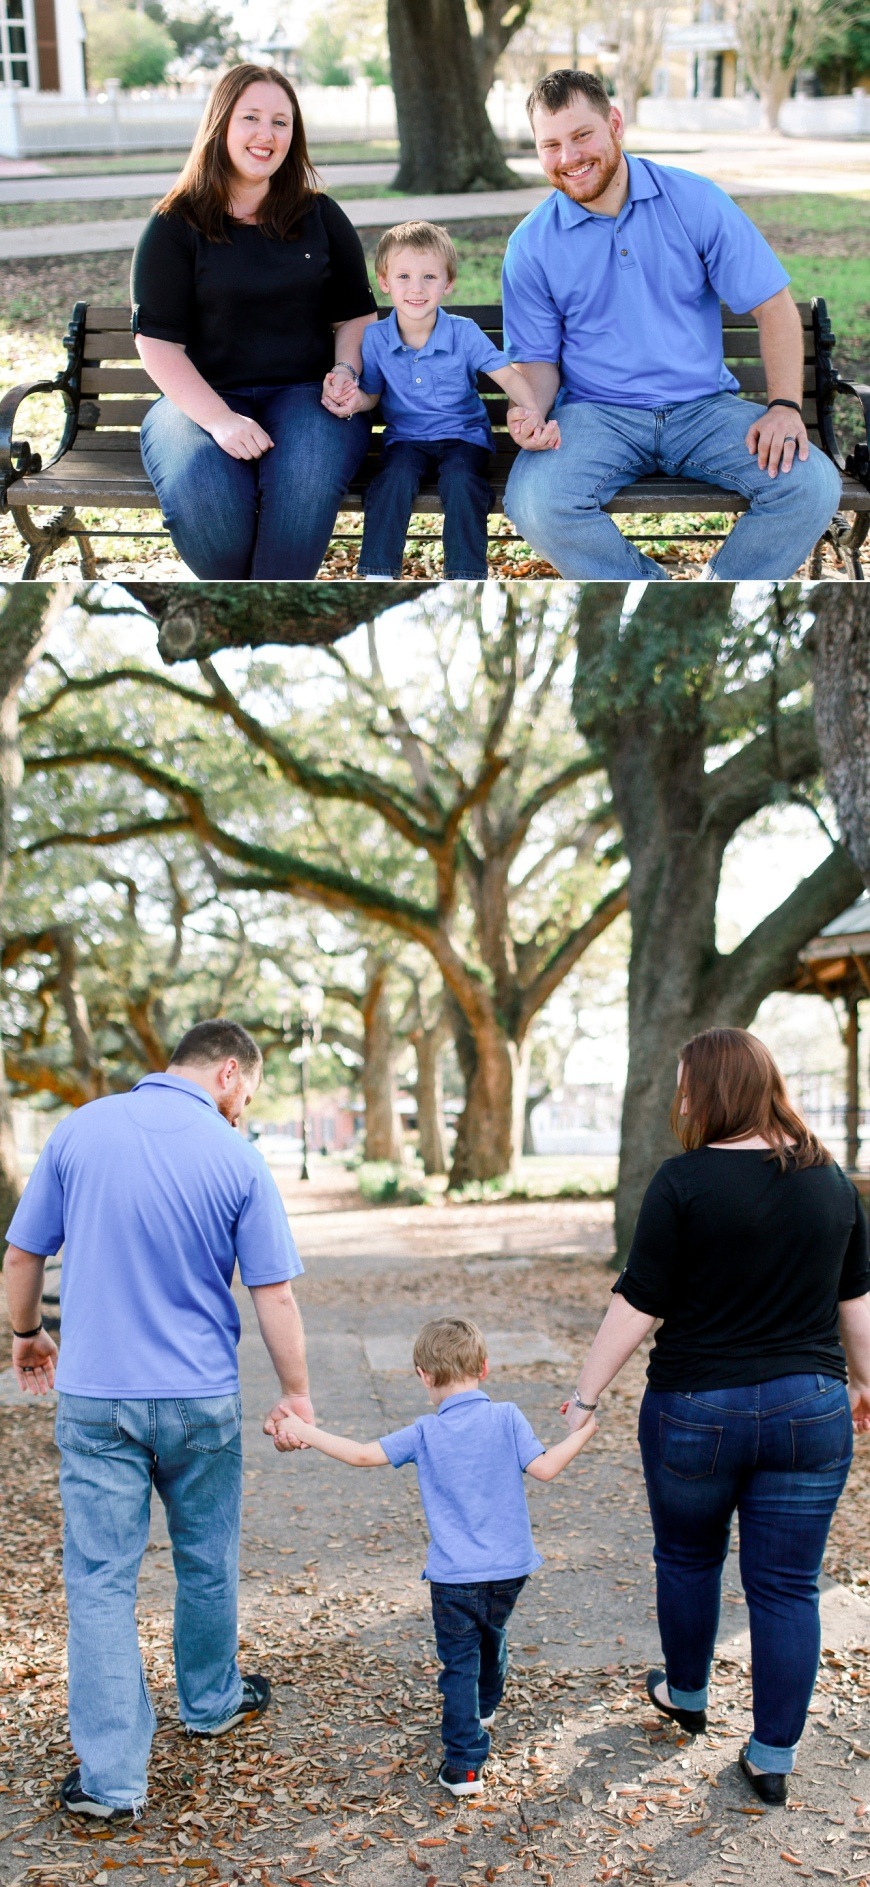 Seville-Square-Pensacola-Family-Photographer_1008.jpg